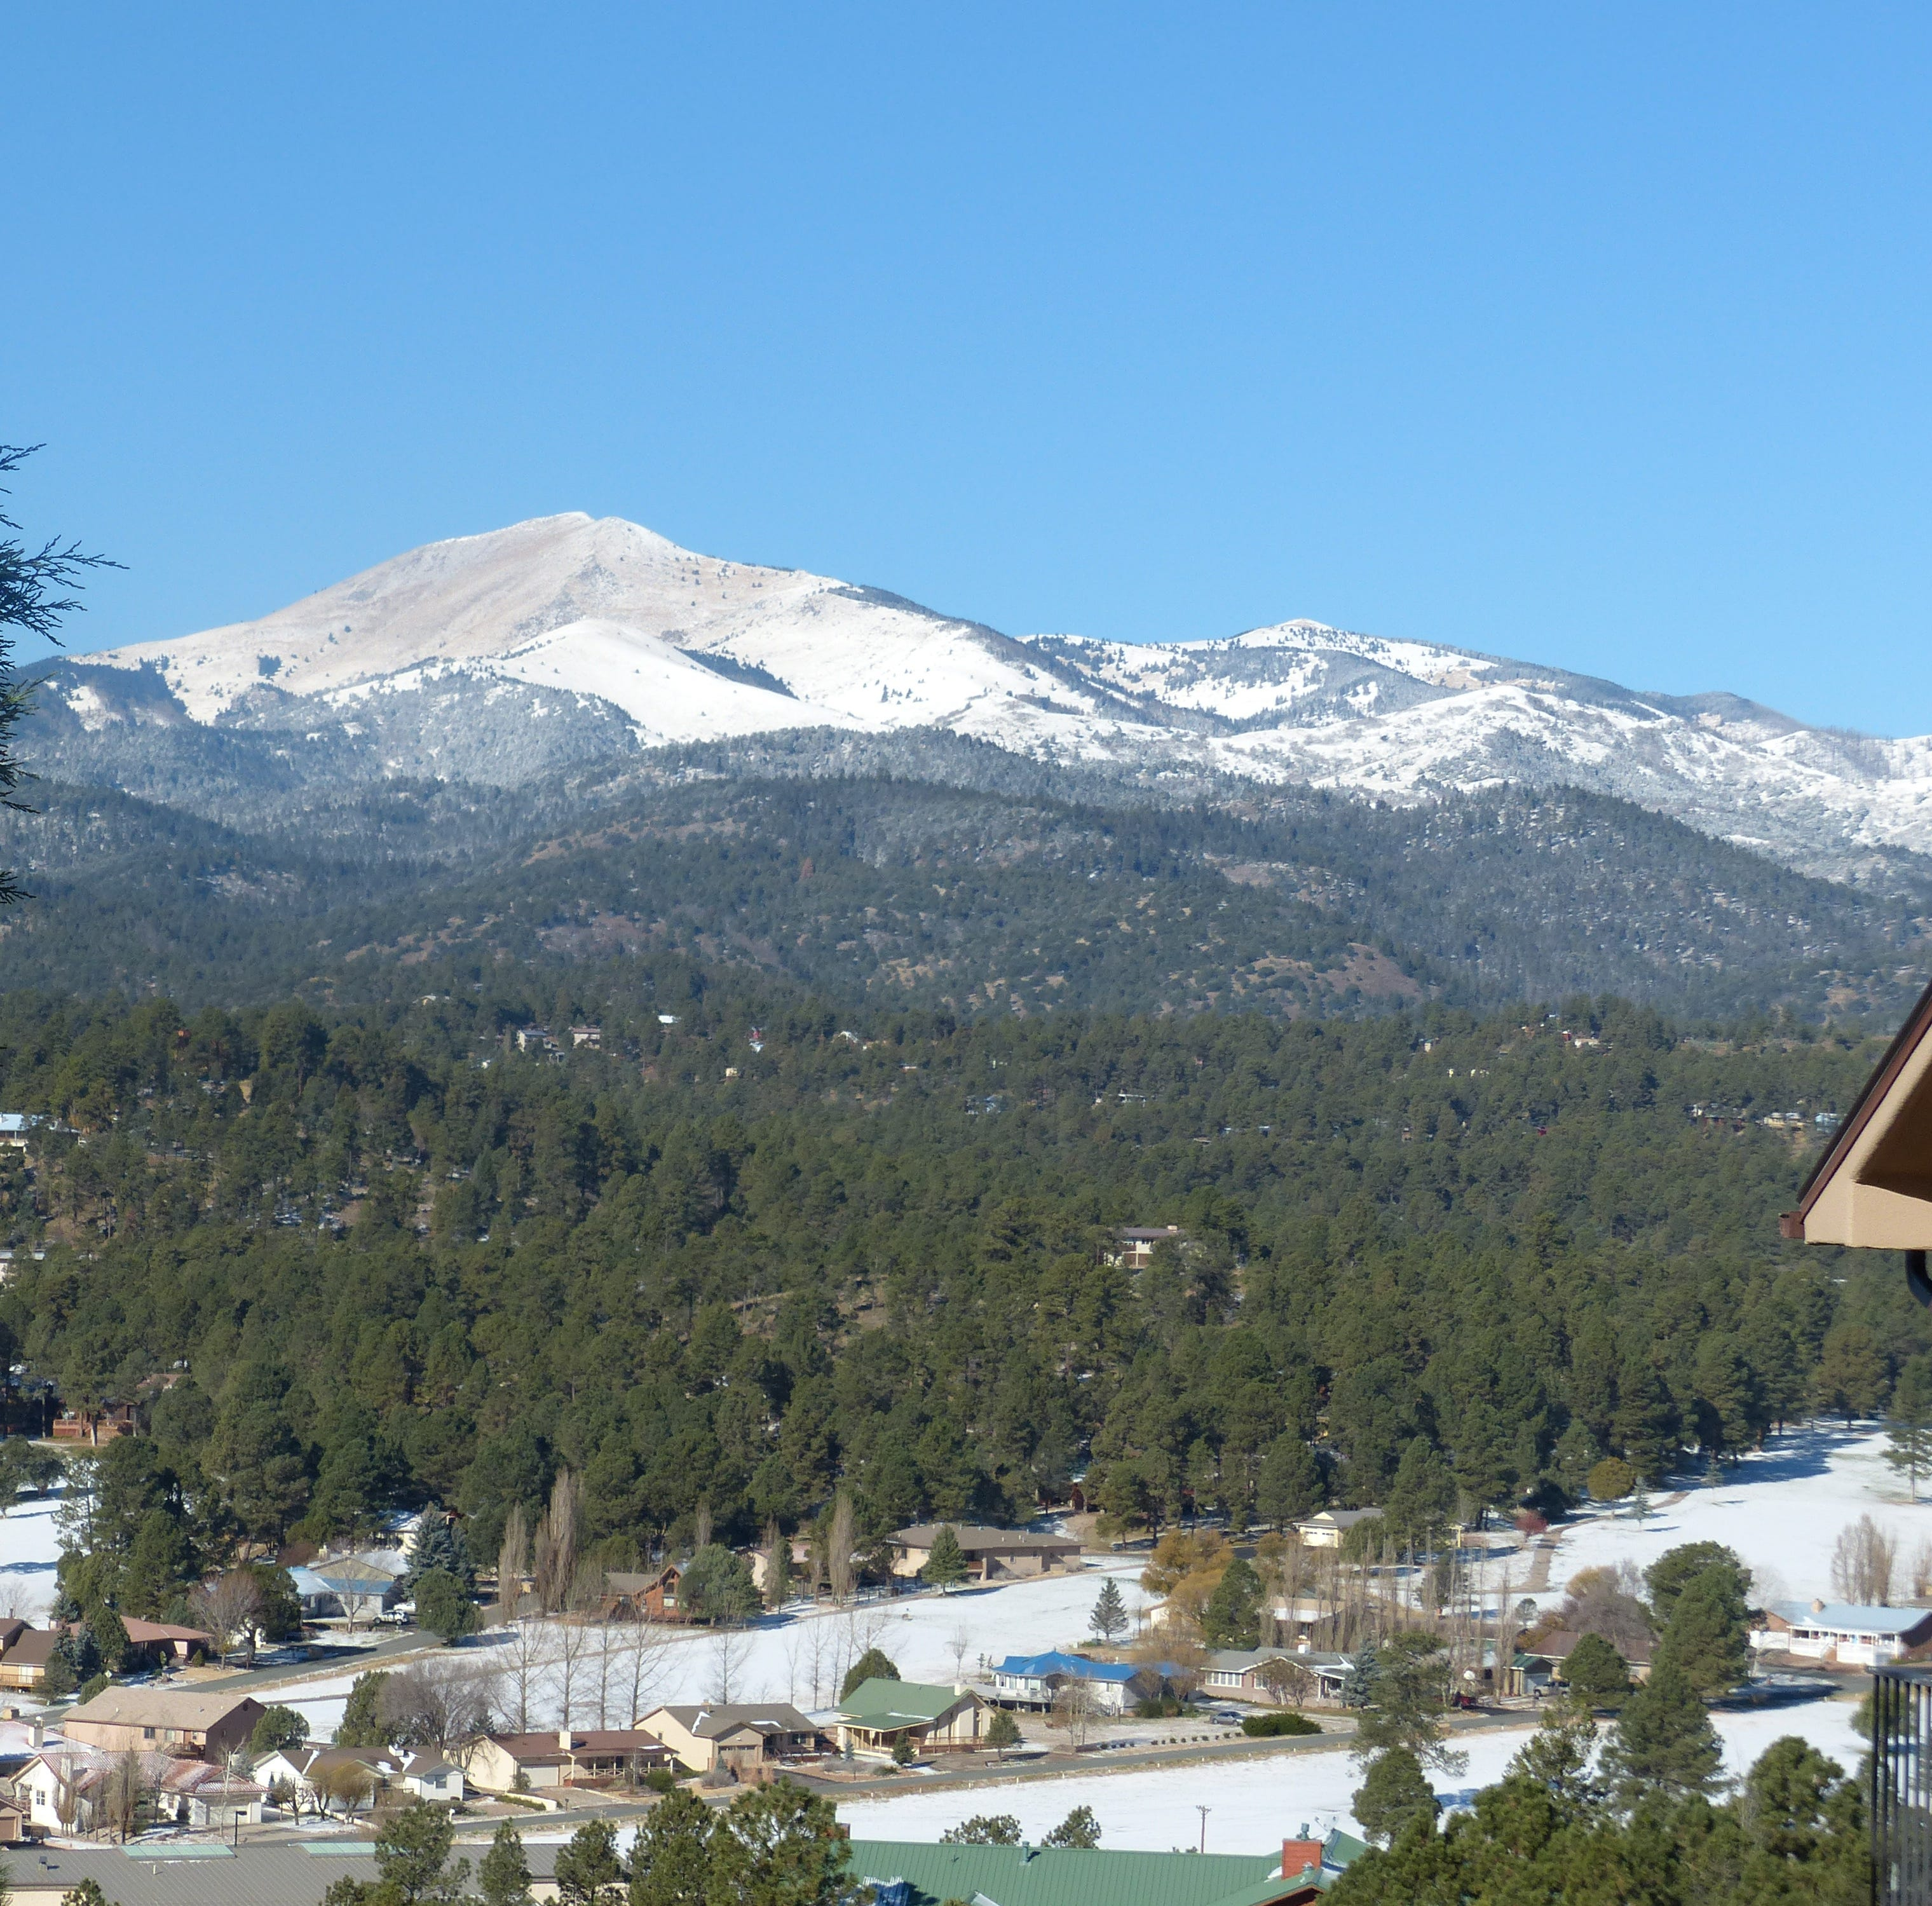 Snow returns to Ruidoso with two storms this week